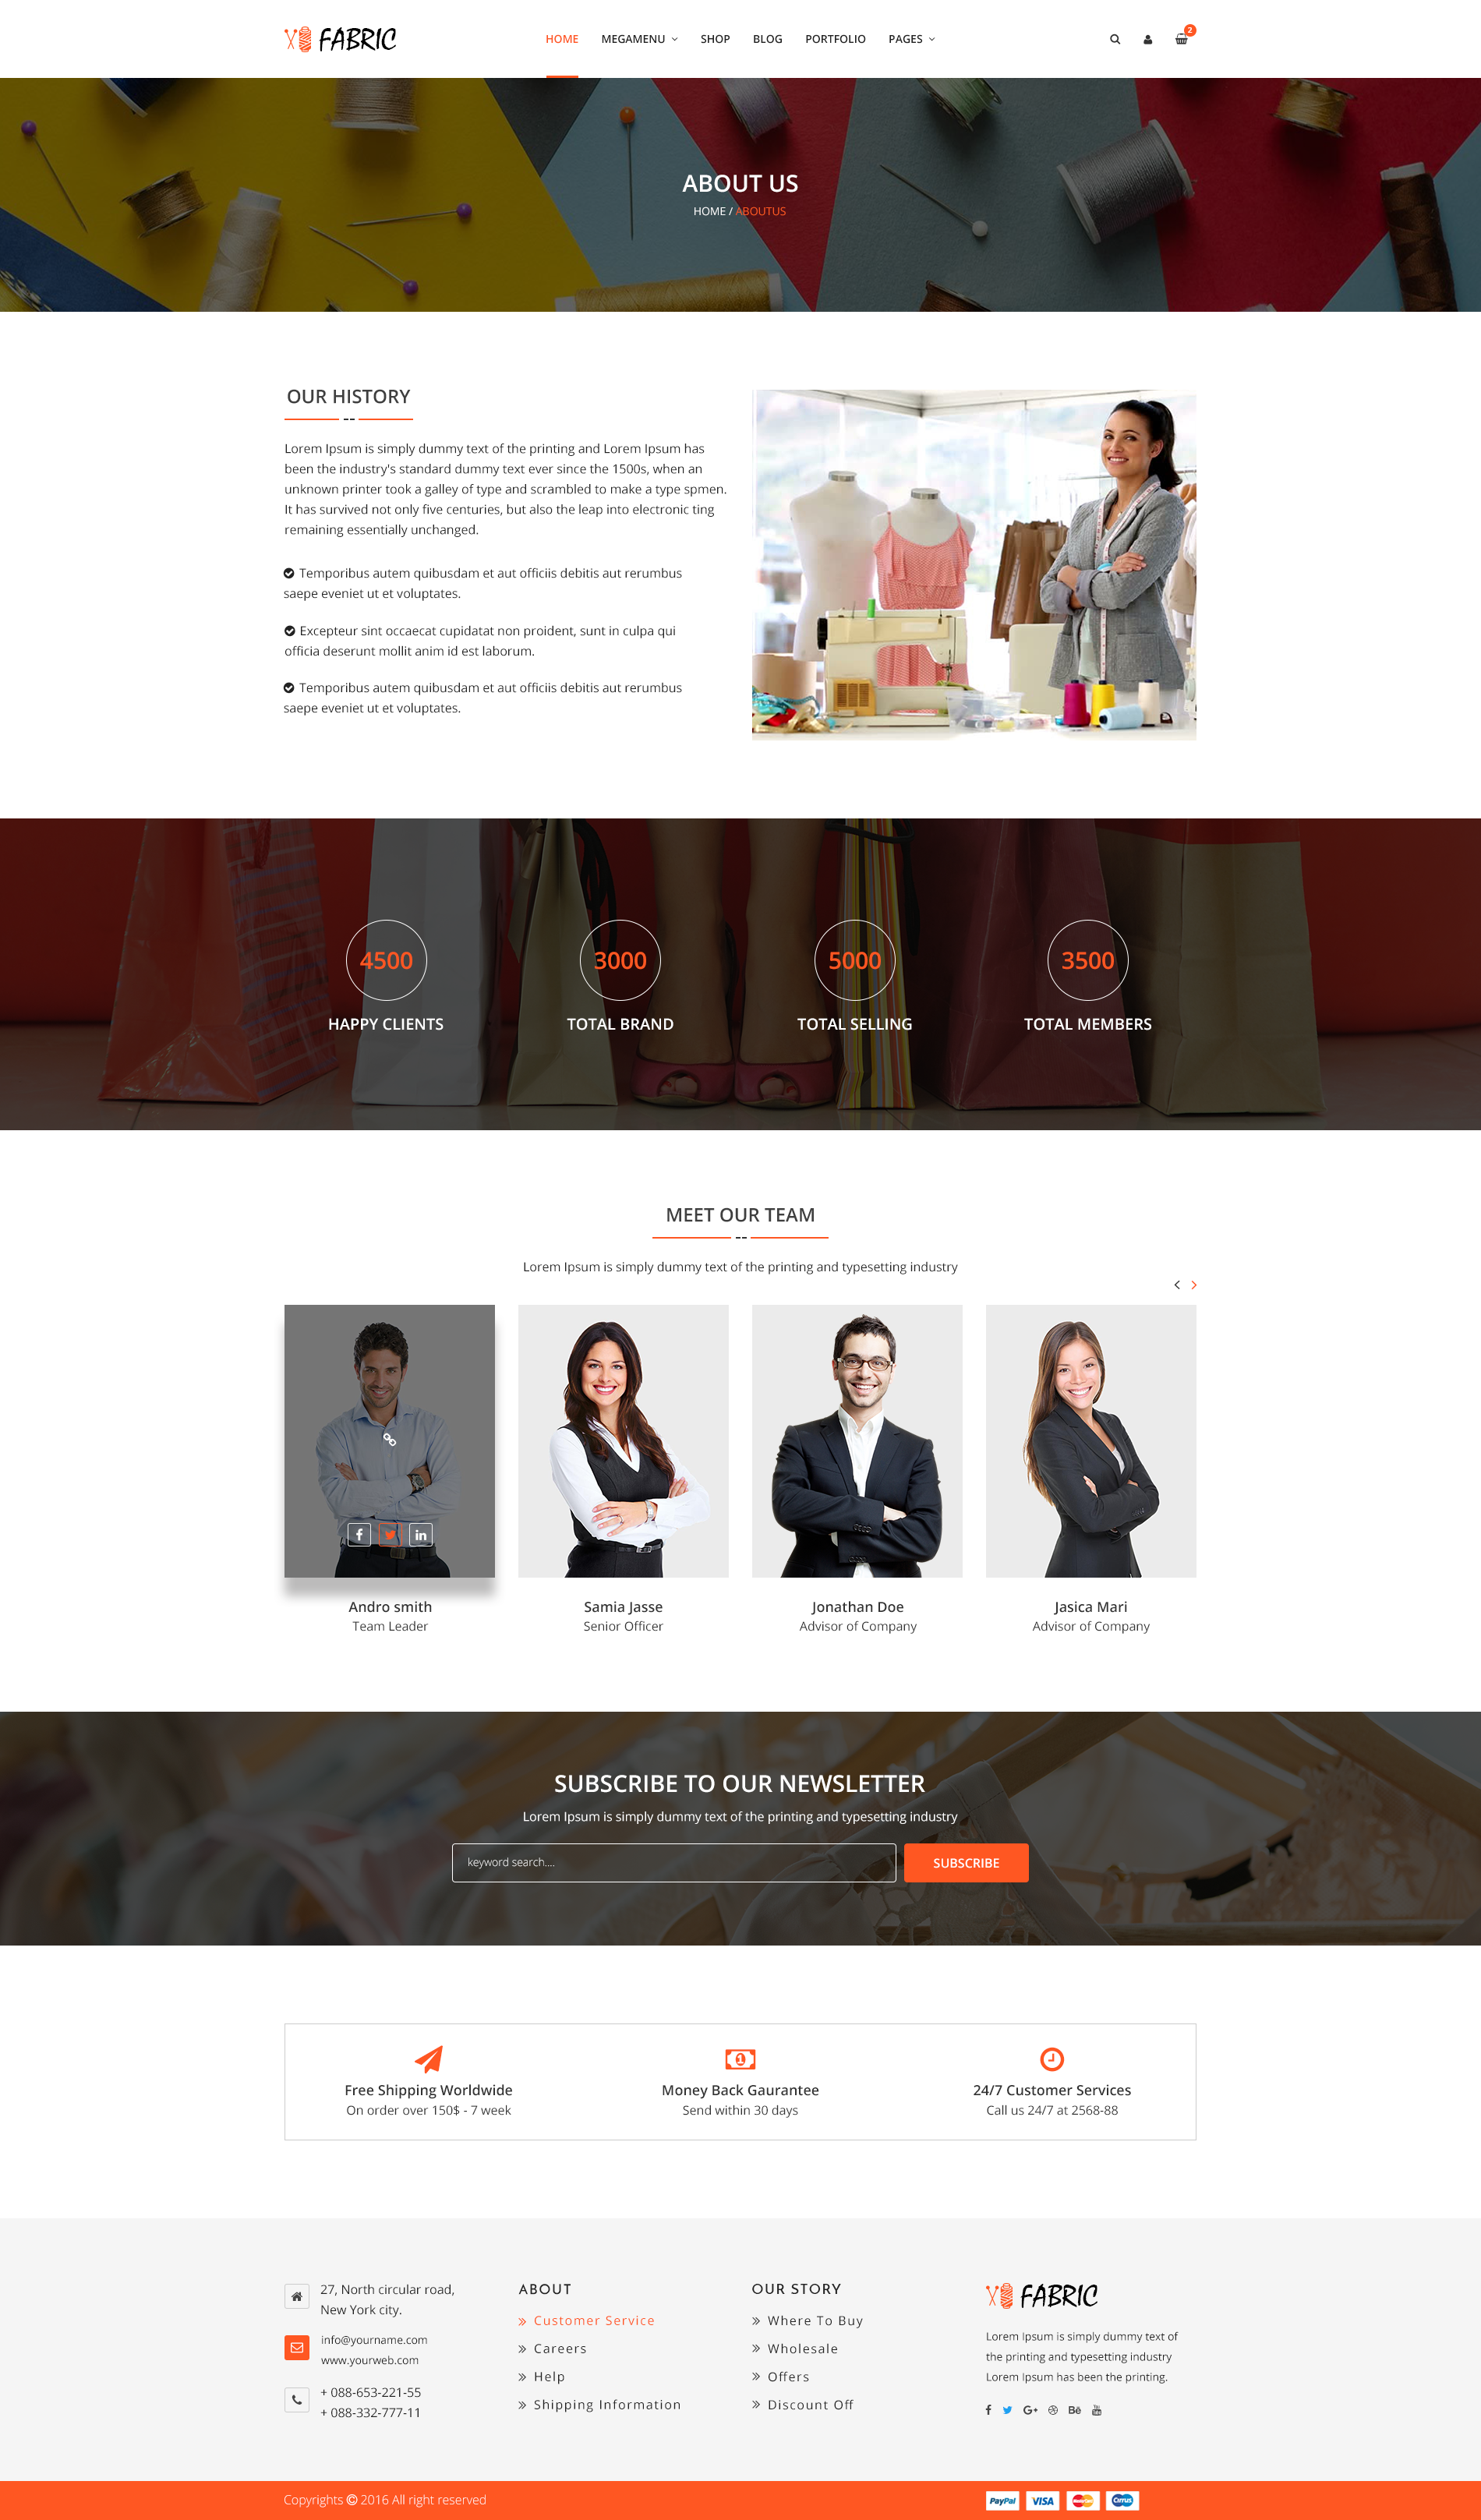 fabric e commerce psd template by bootscore themeforest. Black Bedroom Furniture Sets. Home Design Ideas